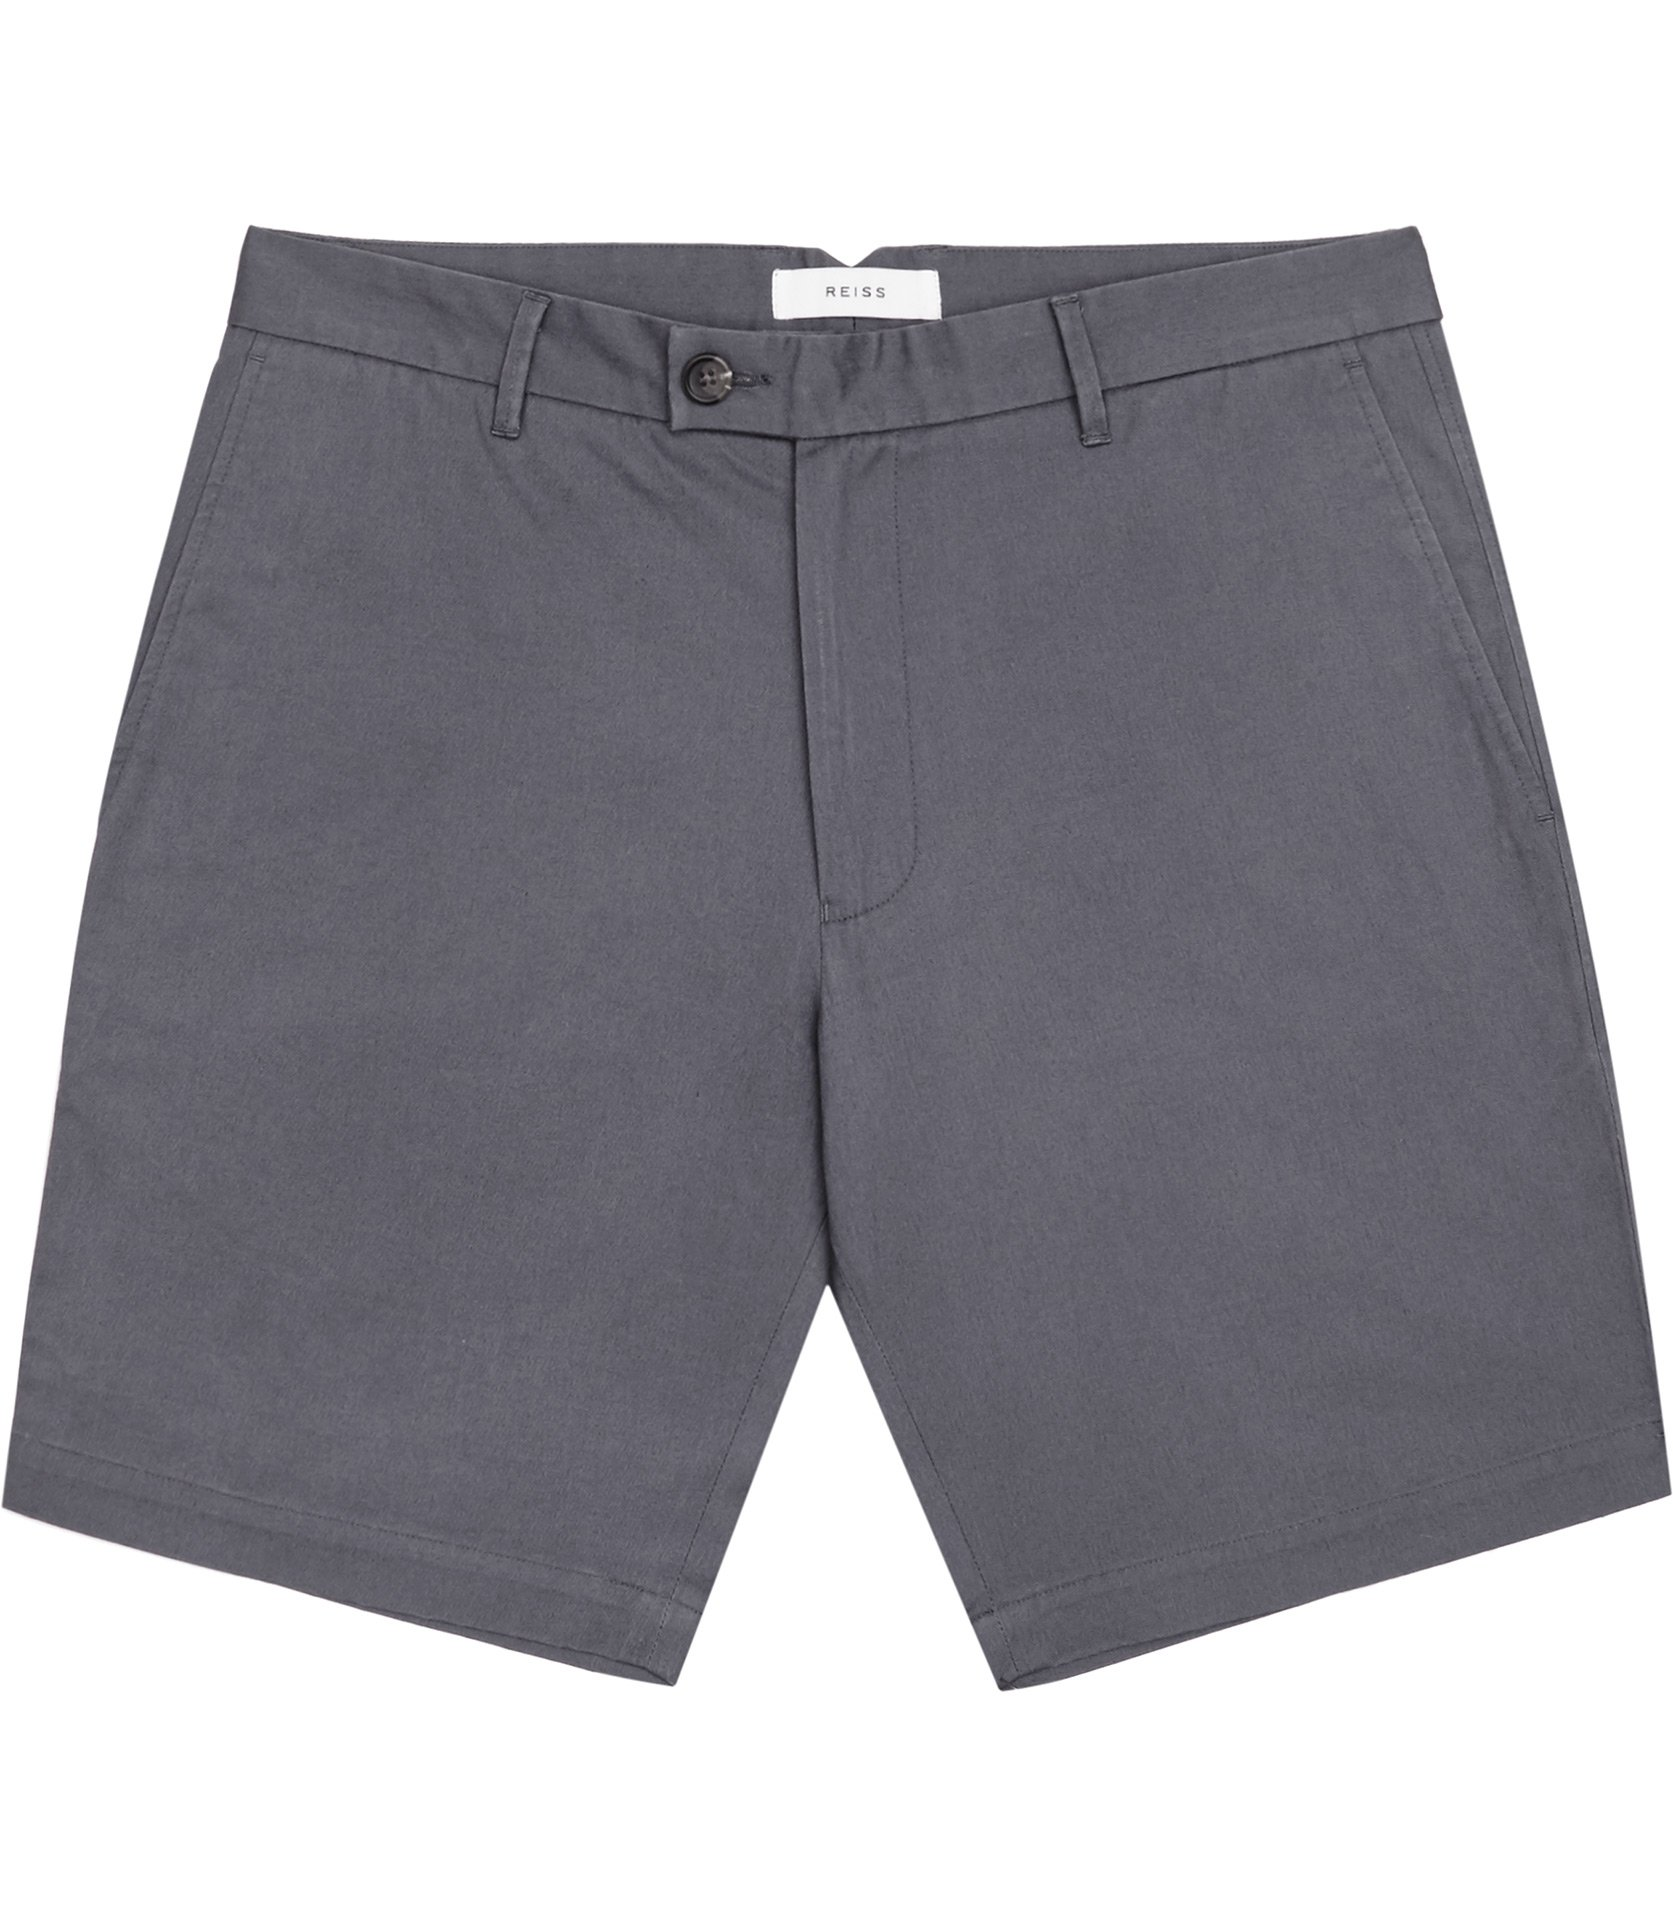 Reiss Airforce Blue Wicker Tailored Cotton Shorts